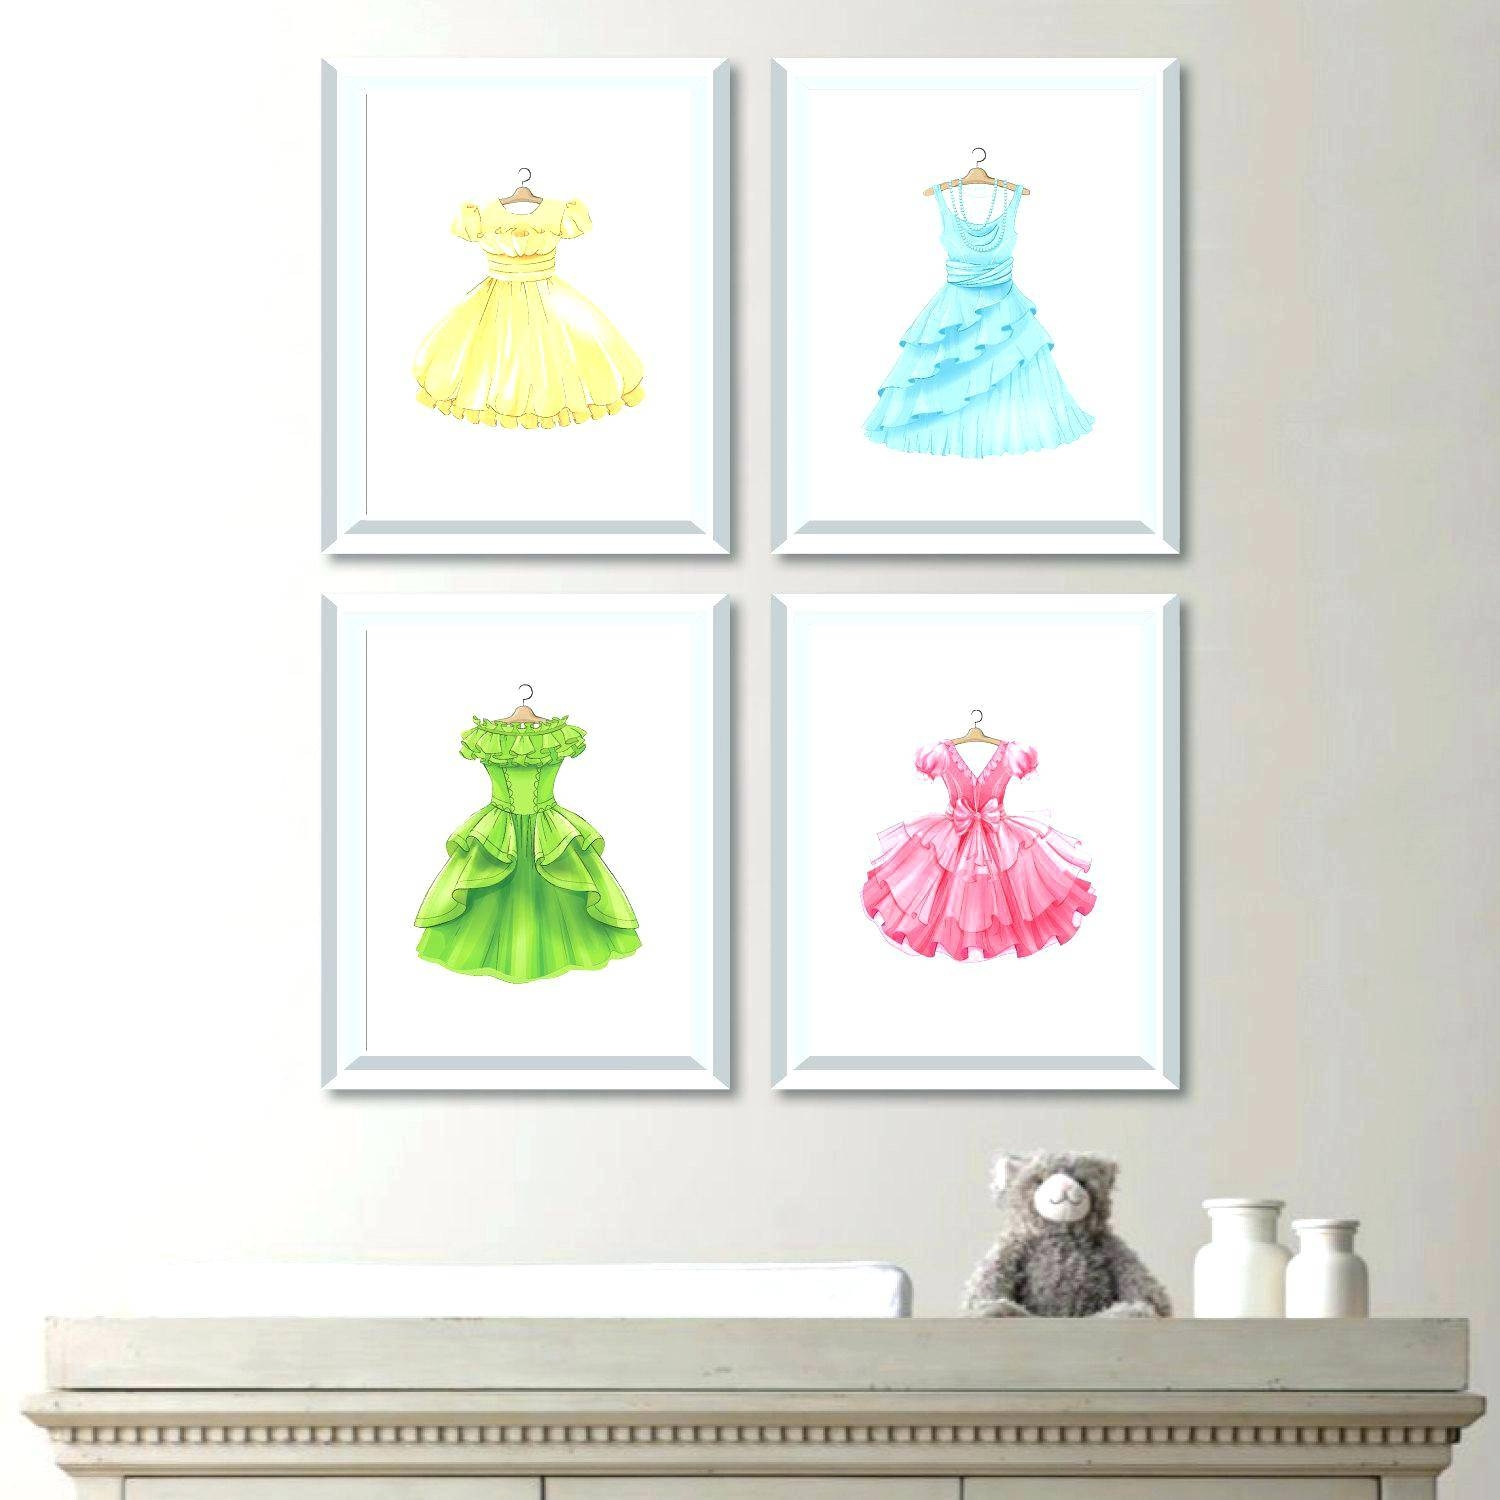 Disney Princess Wall Decals For Kids Rooms Amazing Ideas Princess Within Recent Princess Canvas Wall Art  sc 1 st  Wall Art and Wall Decor Ideas : princess canvas wall art - www.pureclipart.com